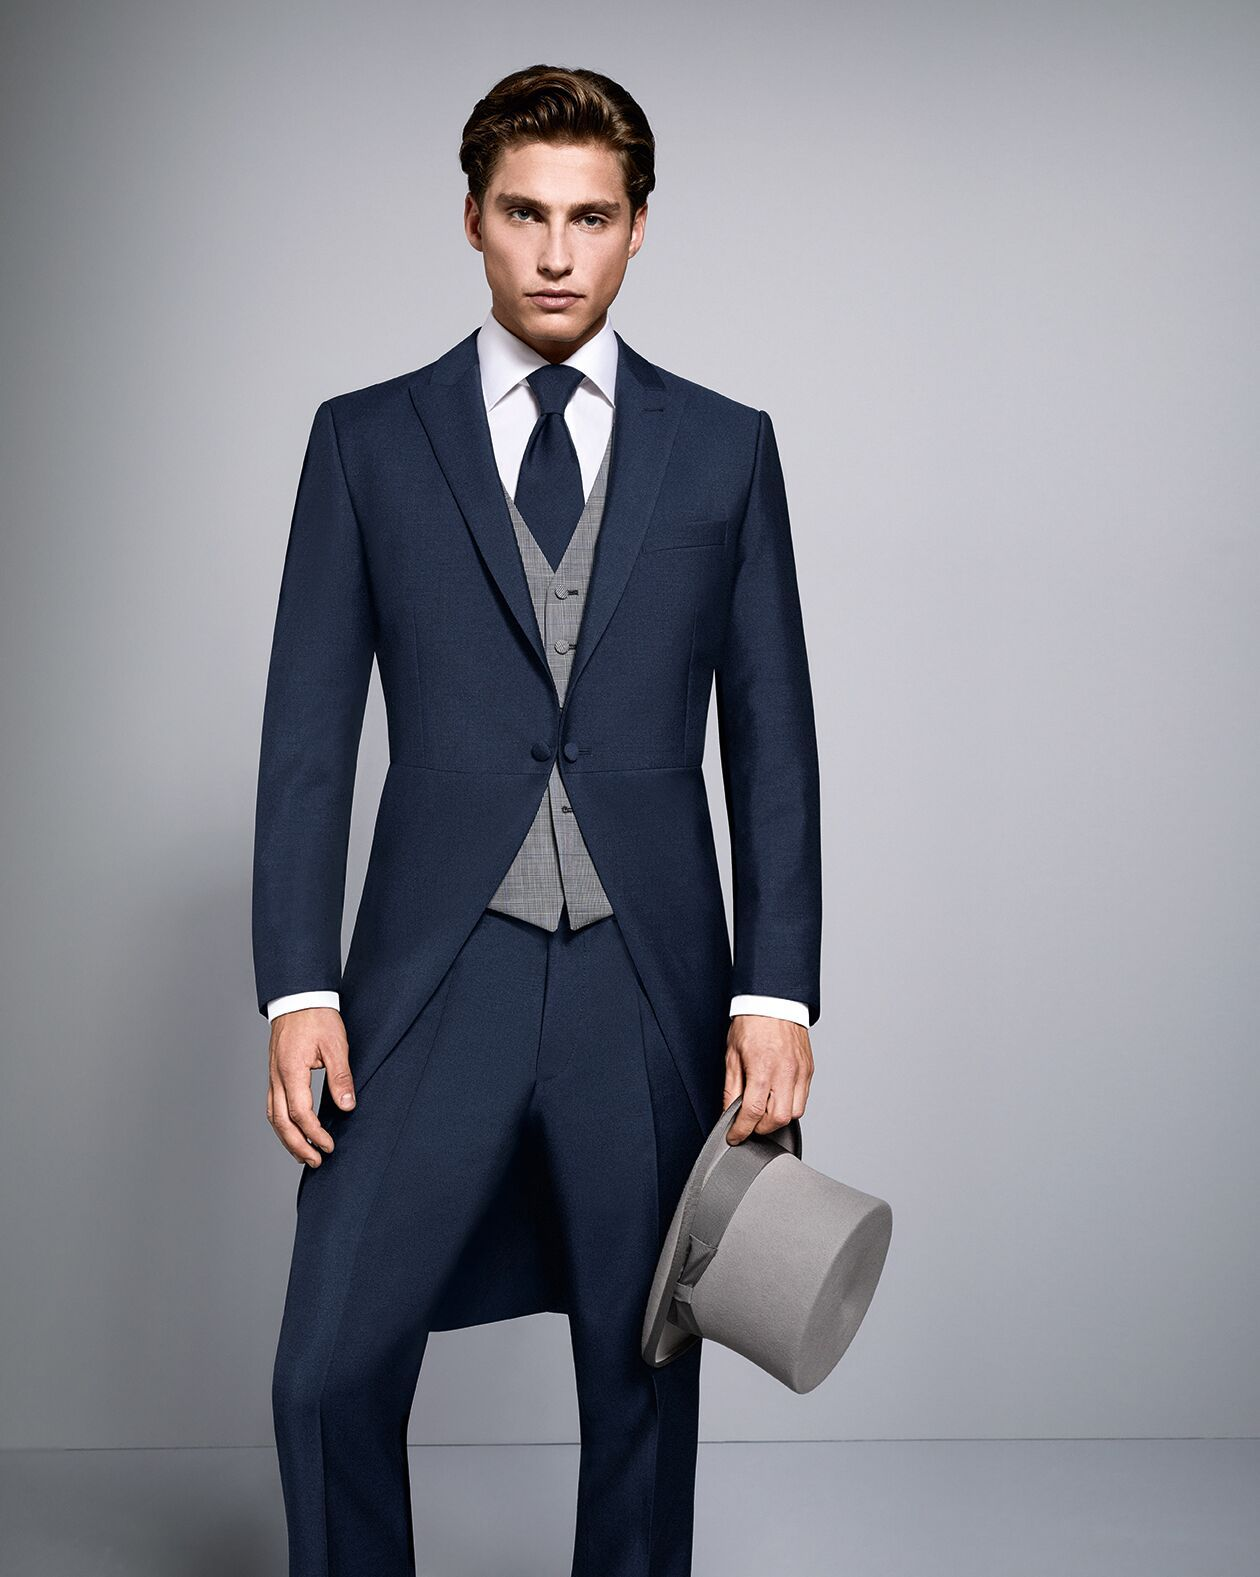 Navy Tail Suit Available To Hire Or Buy This Lightweight Slimline Is Perfect Wedding GroomWedding SuitsMan